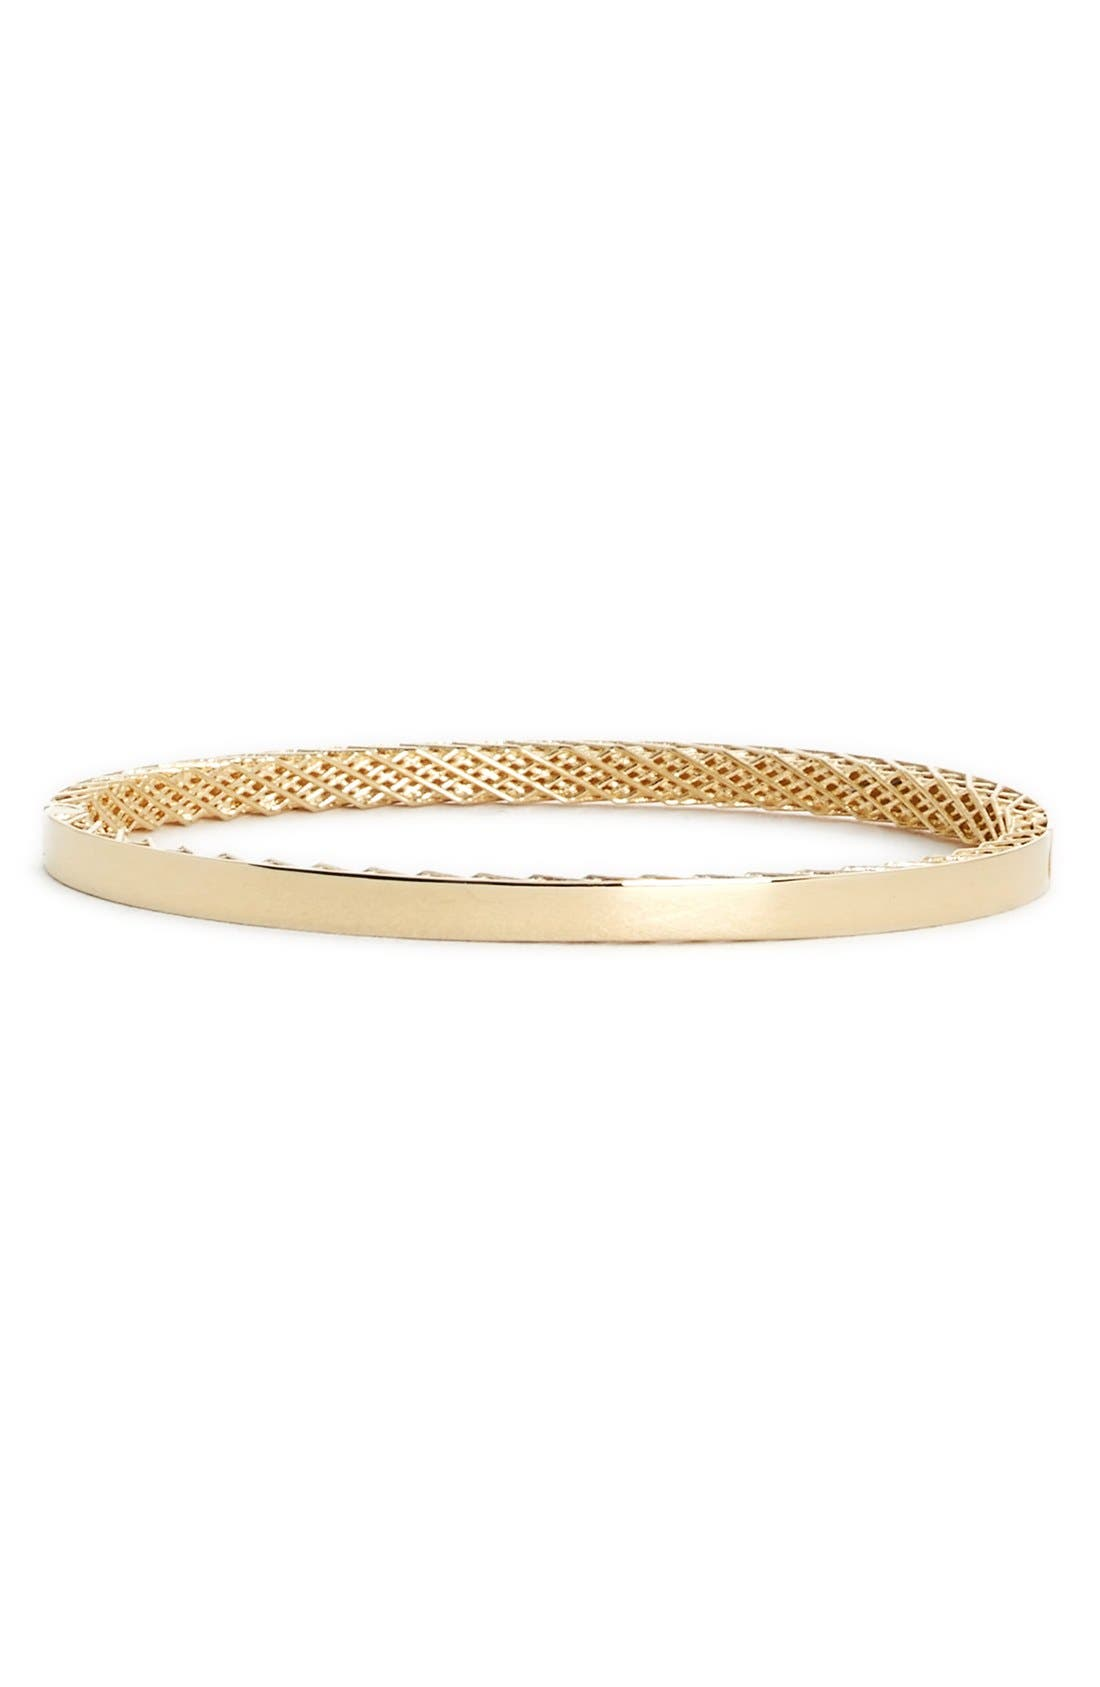 Roberto Coin 'Symphony' Slender Bangle